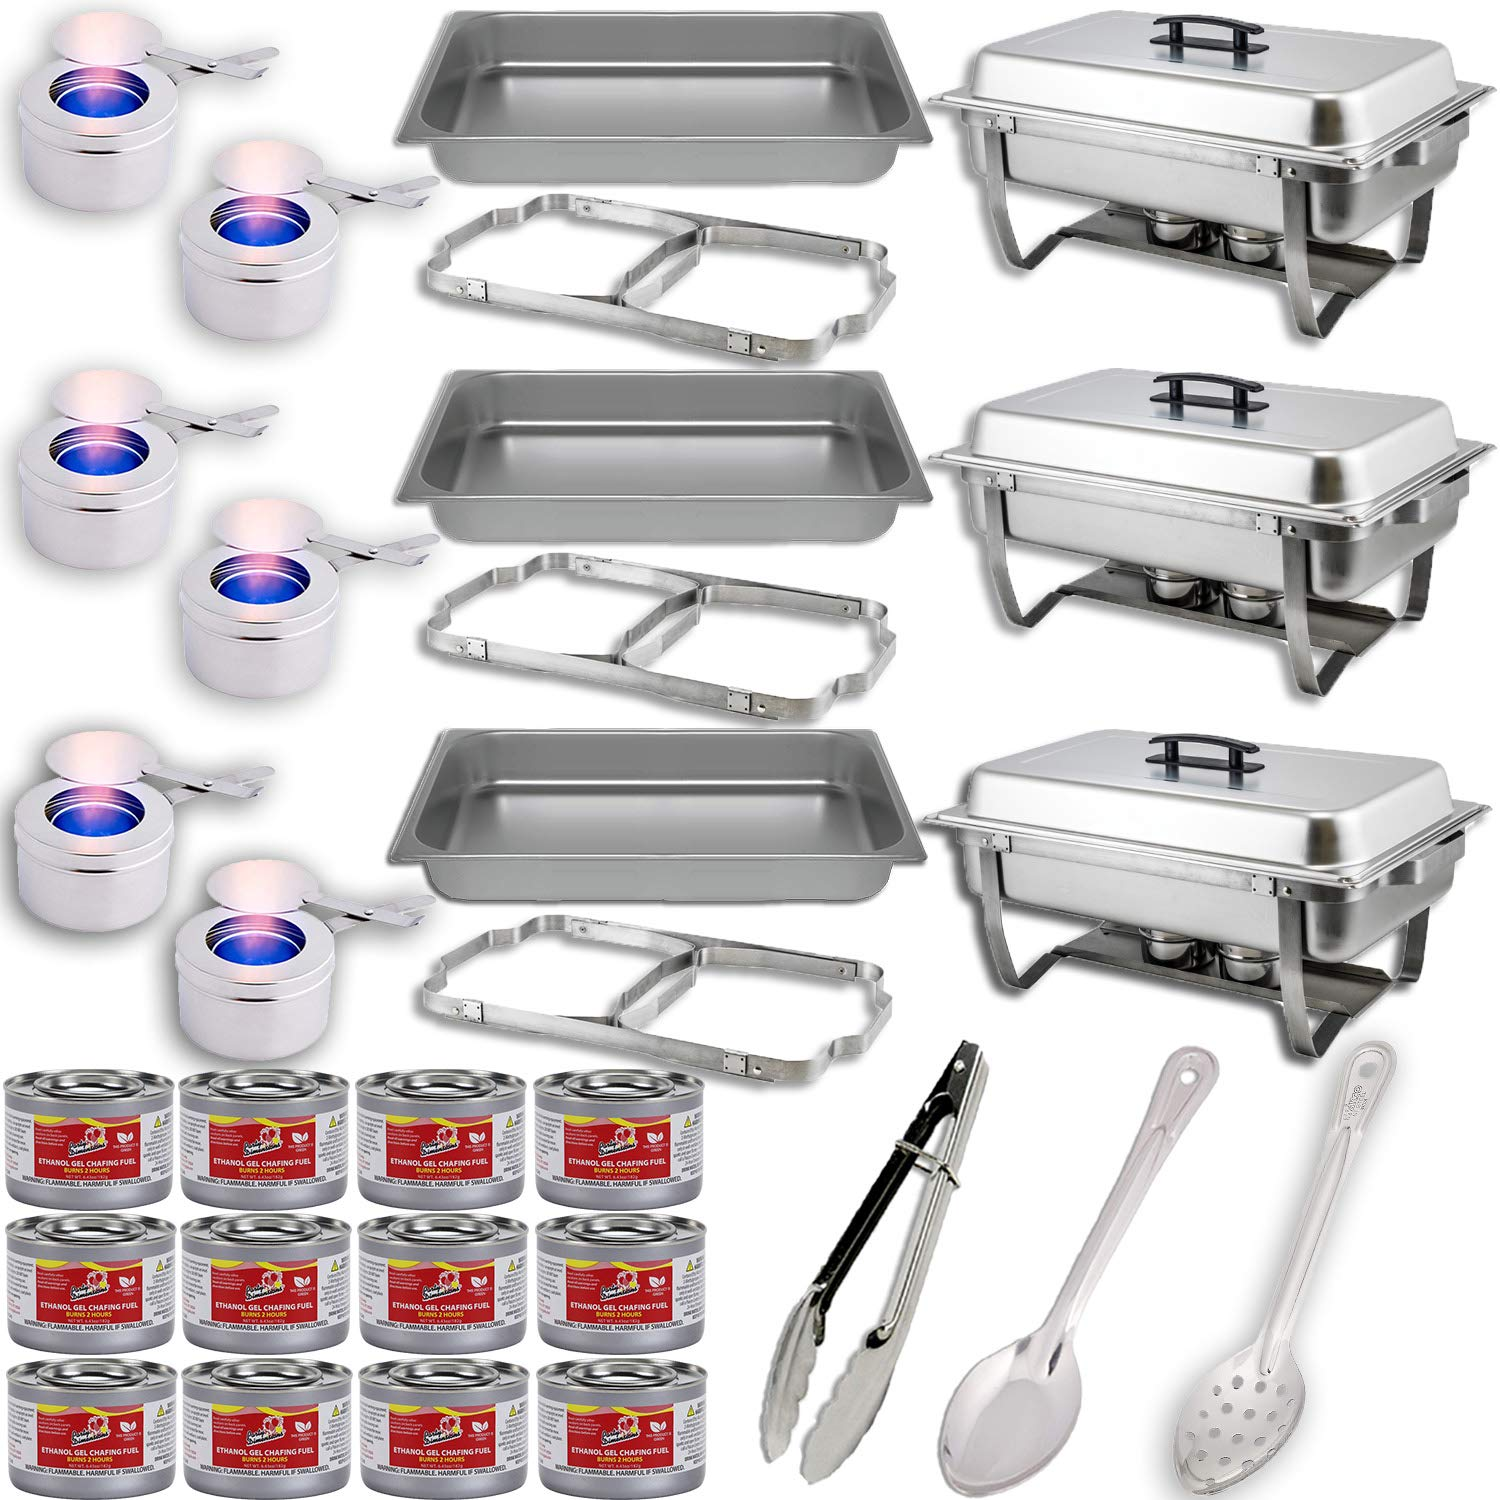 Chafing Dish Buffet Set w/Fuel - Folding Frame + Water Pans + Food Pans 8qt + Lids + 6 Fuel Holders + 12 Fuel Cans + Serving Utensils (15'' Perforated spoon + 15'' Solid Spoon + 9'' Tong) - 3 Warmer Kit by HeroFiber